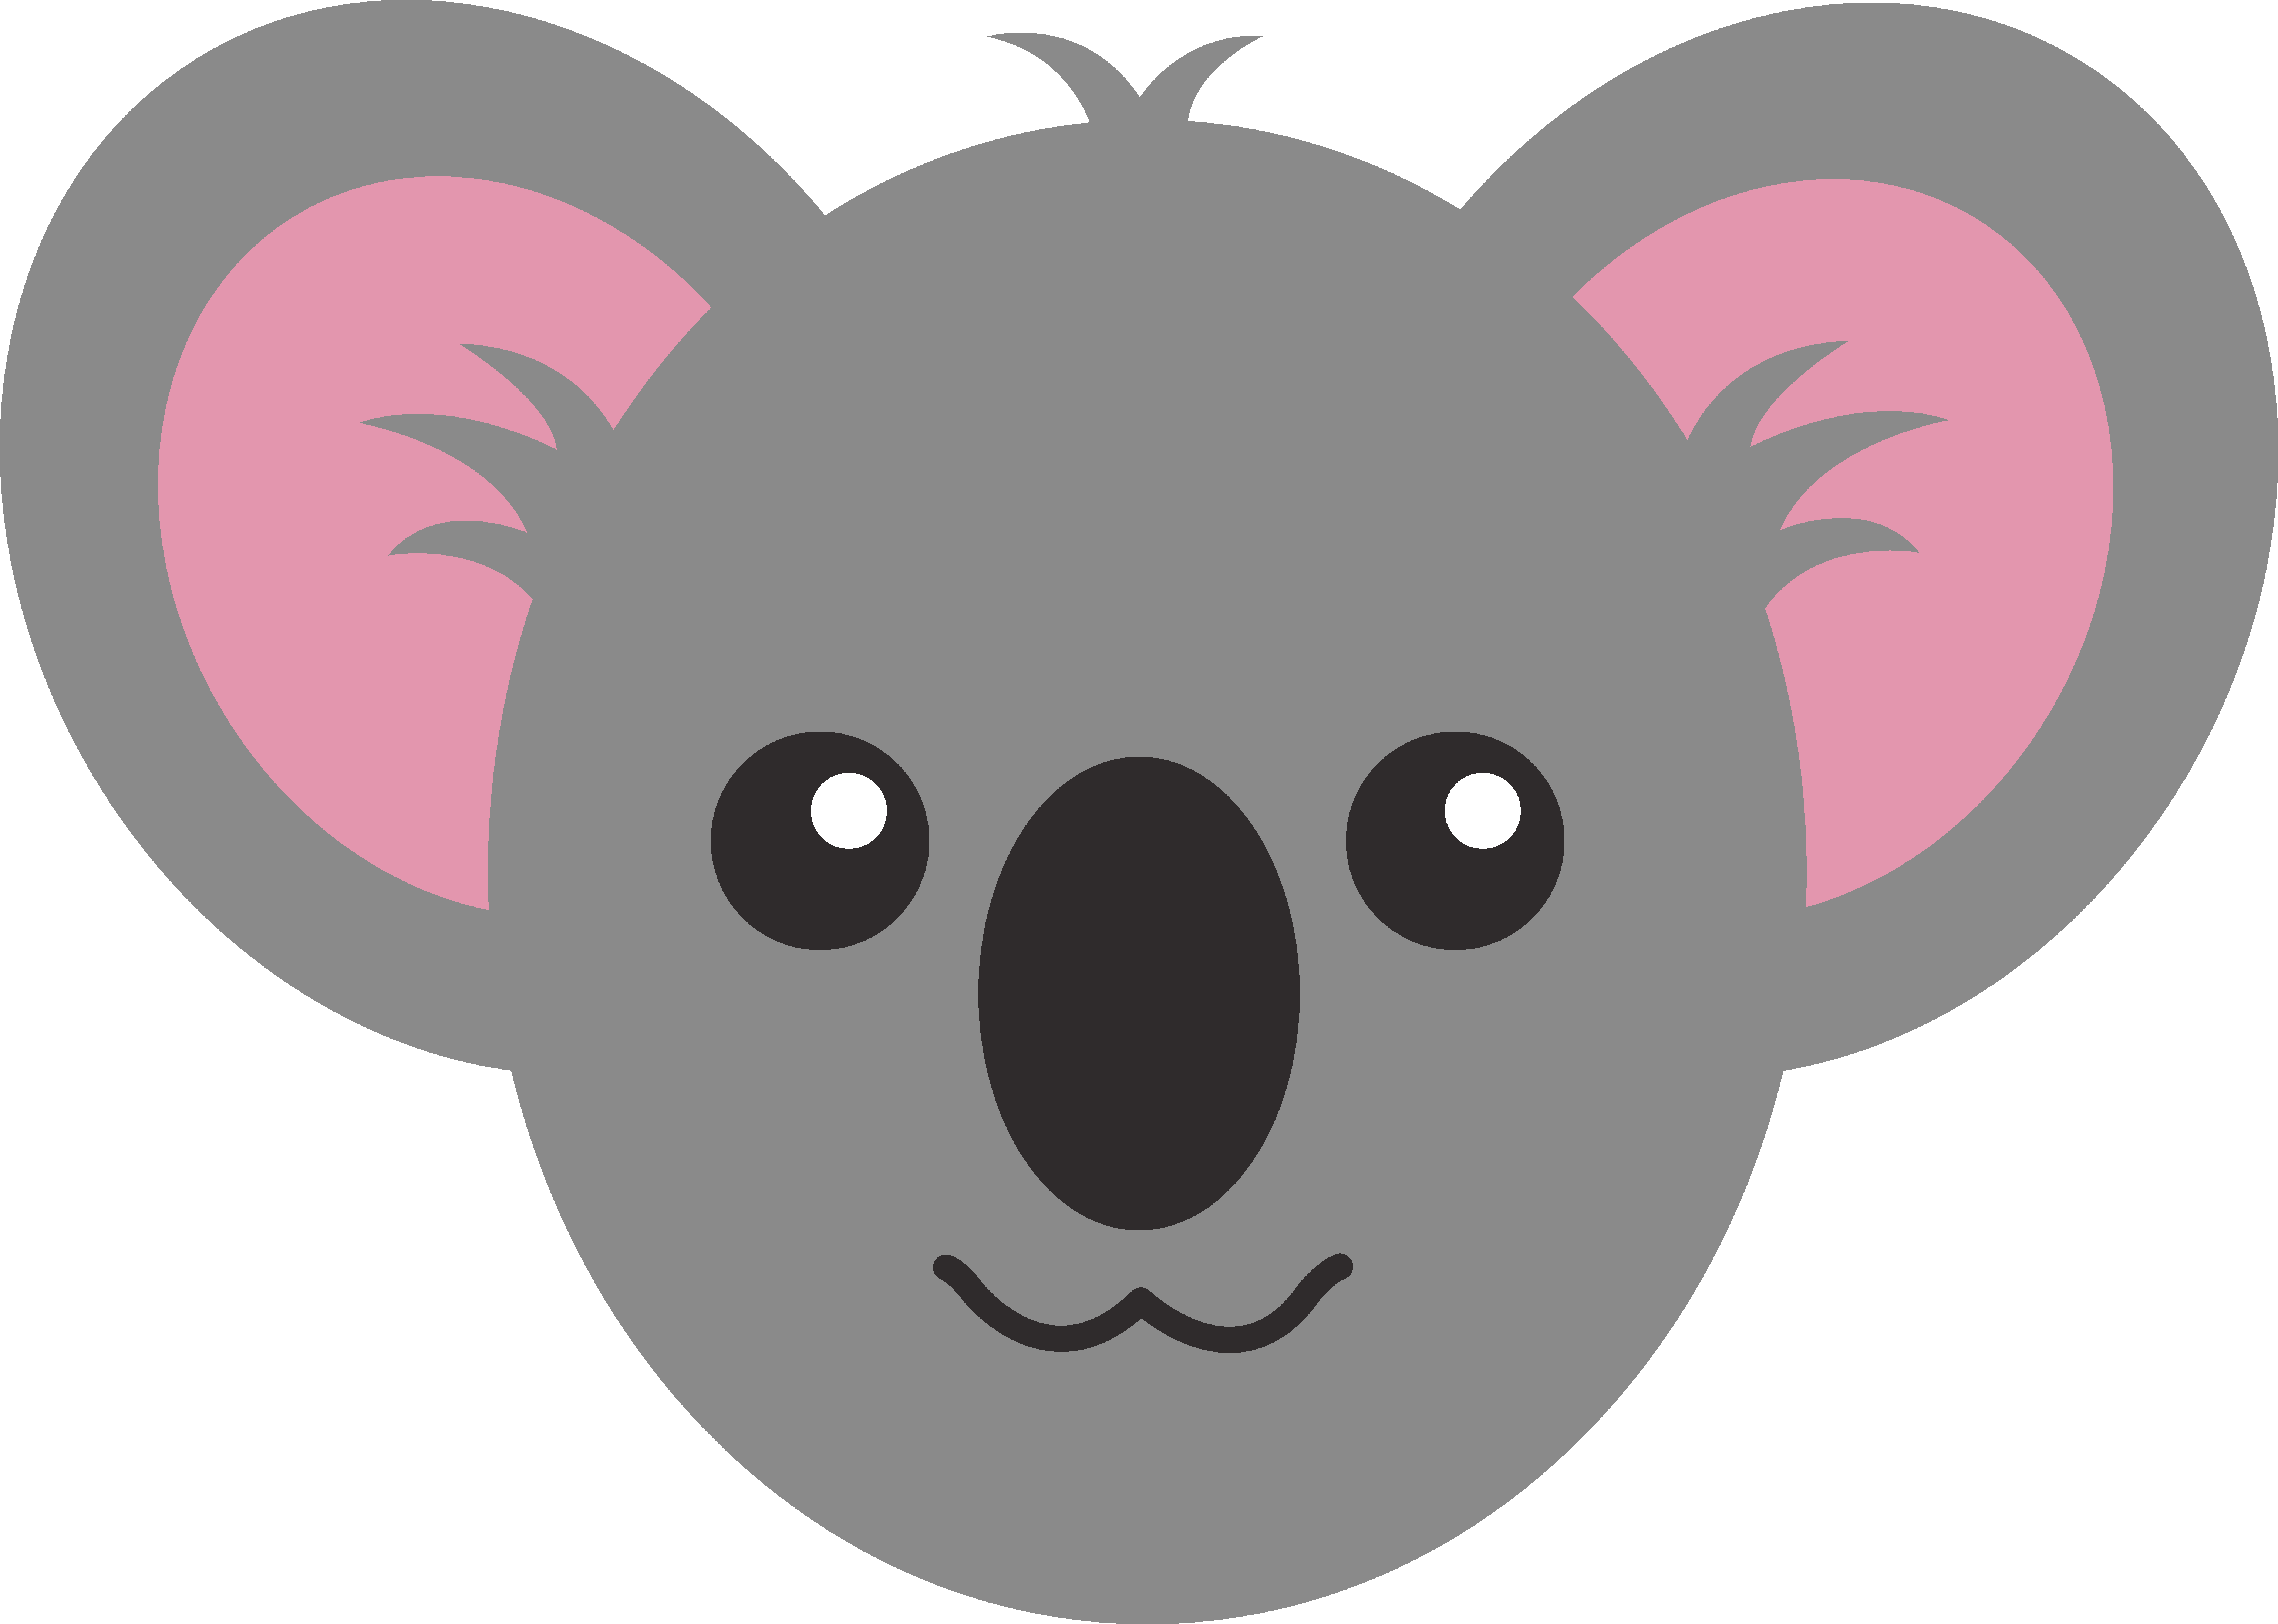 Baby Koala Drawing at GetDrawings | Free download